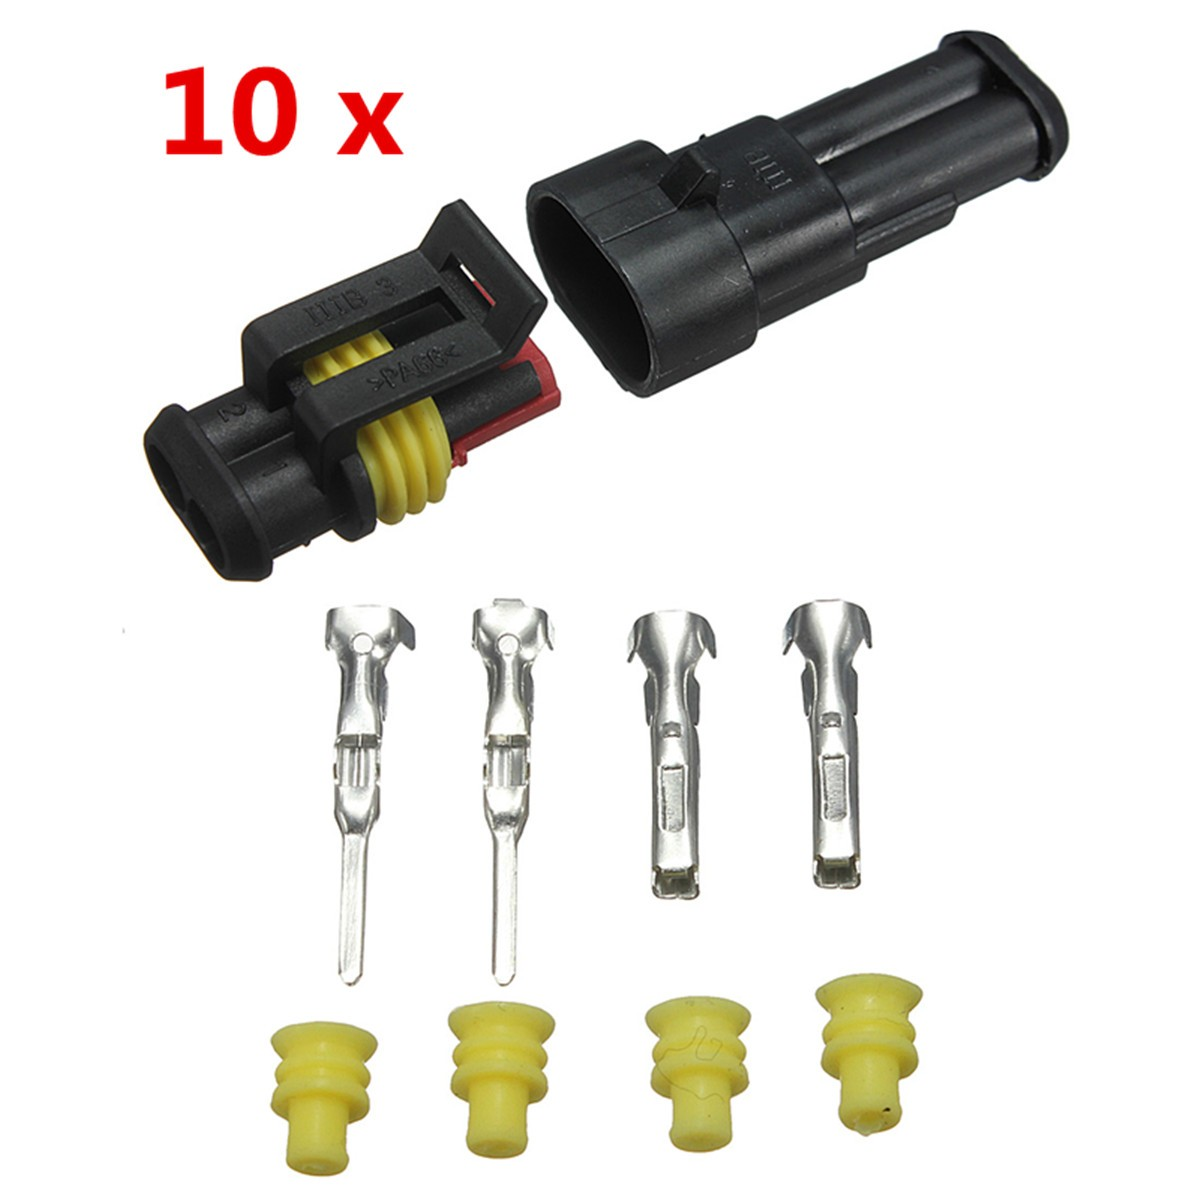 10 Kit CAR Universal Vehicle 4 PIN Way Sealed Electrical Wire Connector